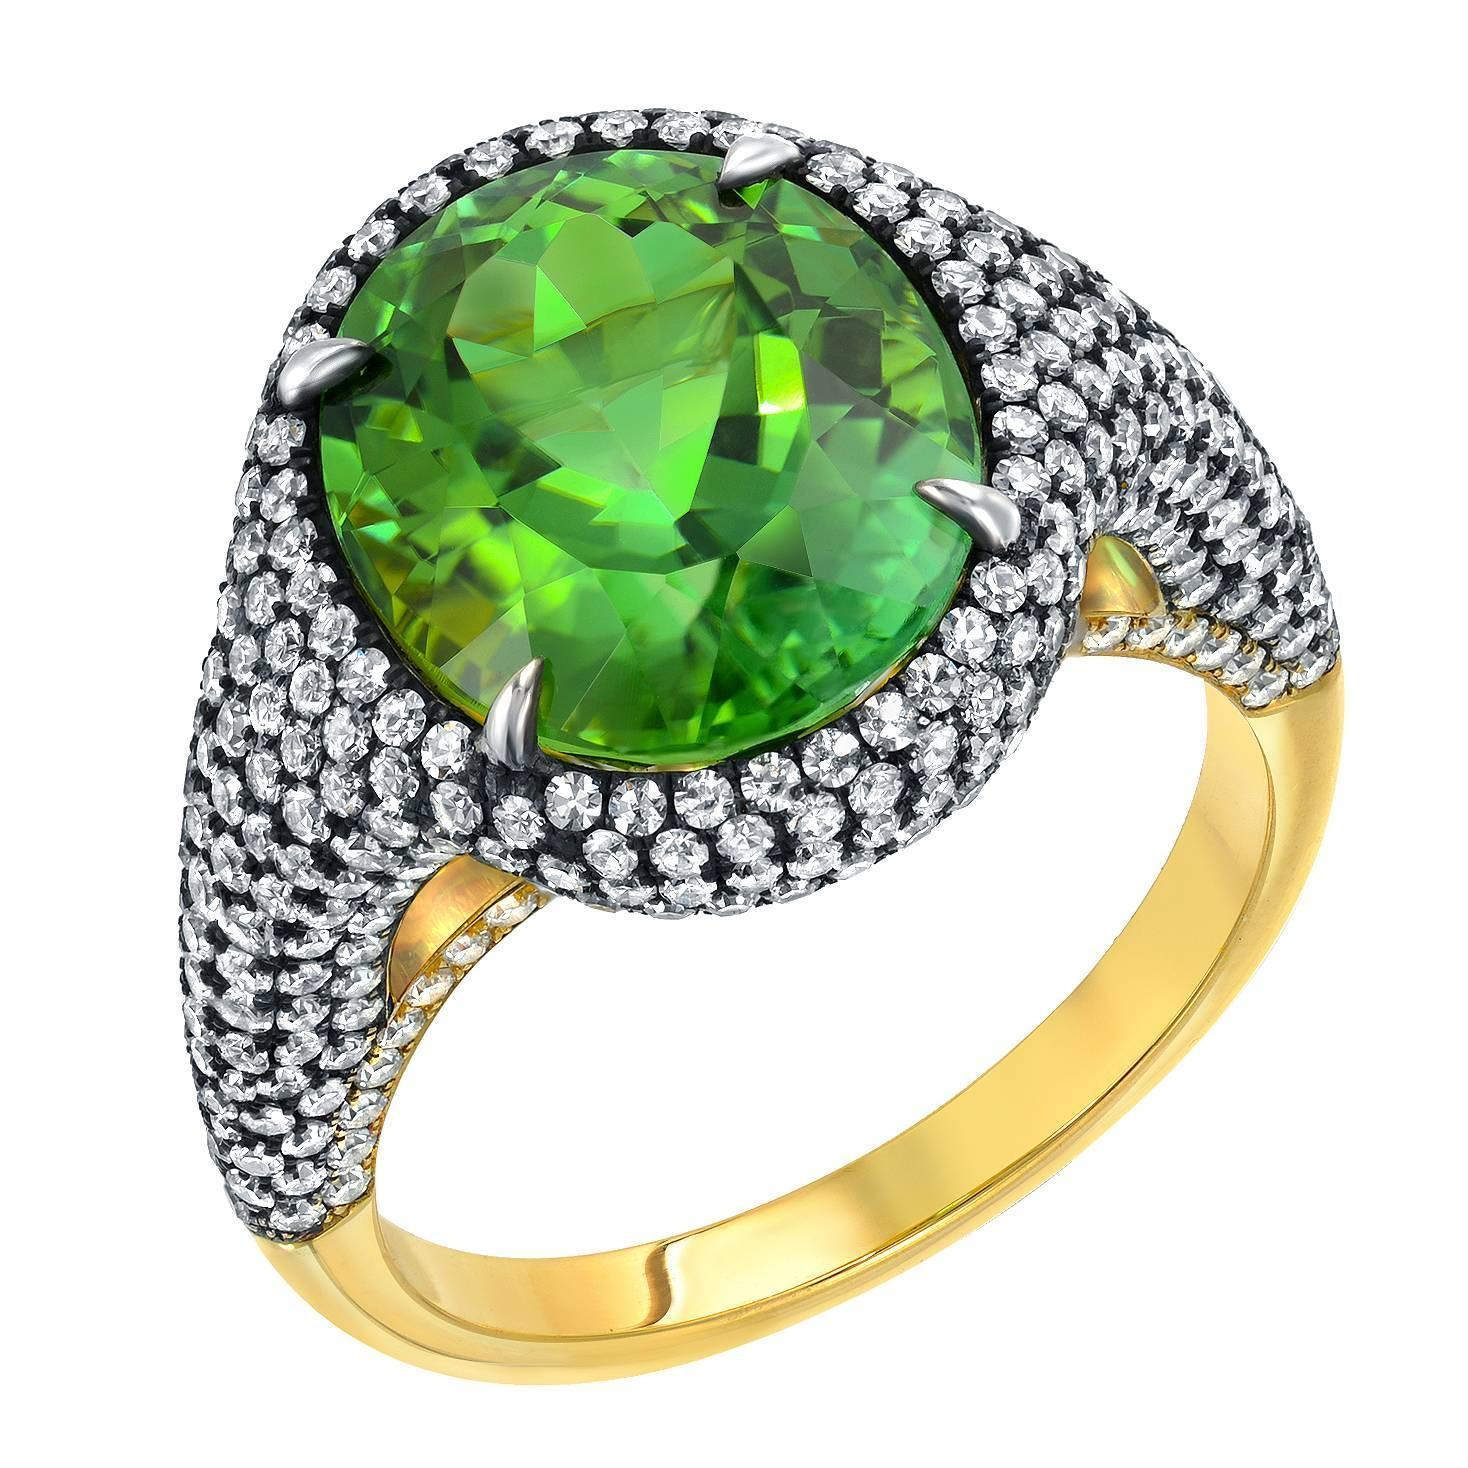 diamond rings engagement and ring tourmaline green costagli an paolo products